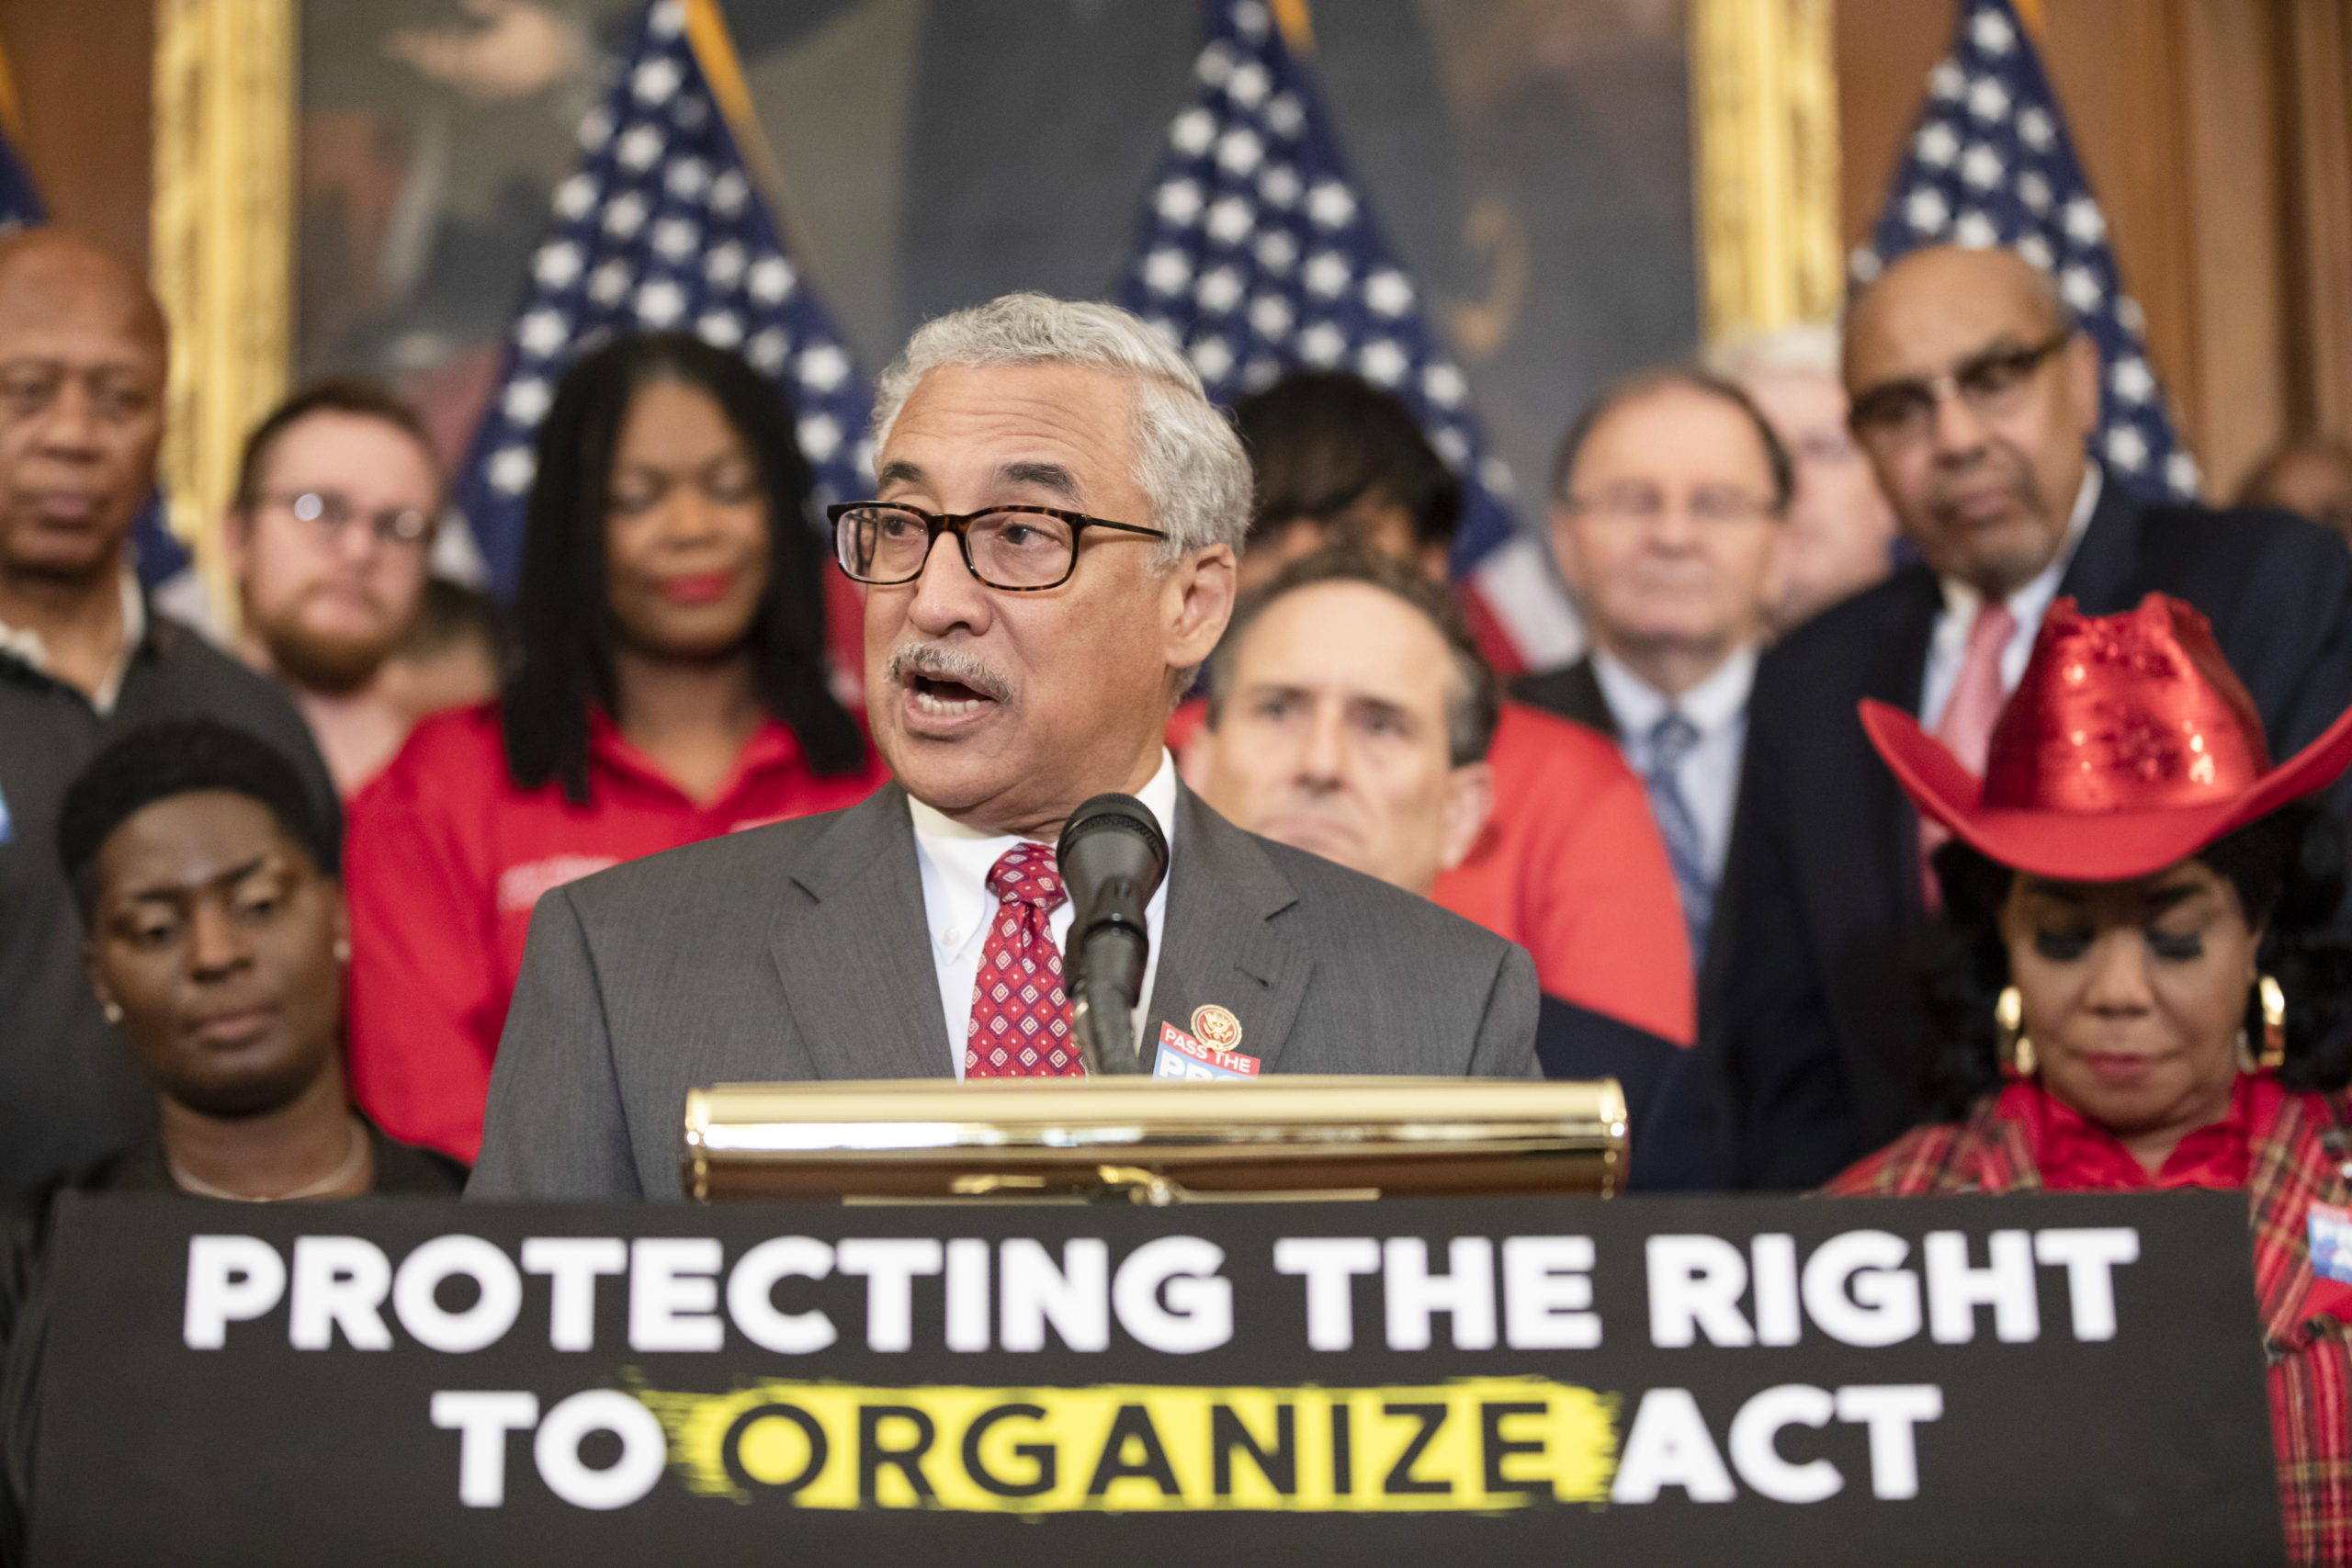 Rep. Bobby Scott, Chairman of the House Committee on Education and the Workforce, speaks during a press conference advocating for the PRO Act on Feb. 5, 2020 in Washington, D.C. (Samuel Corum/Getty Images)